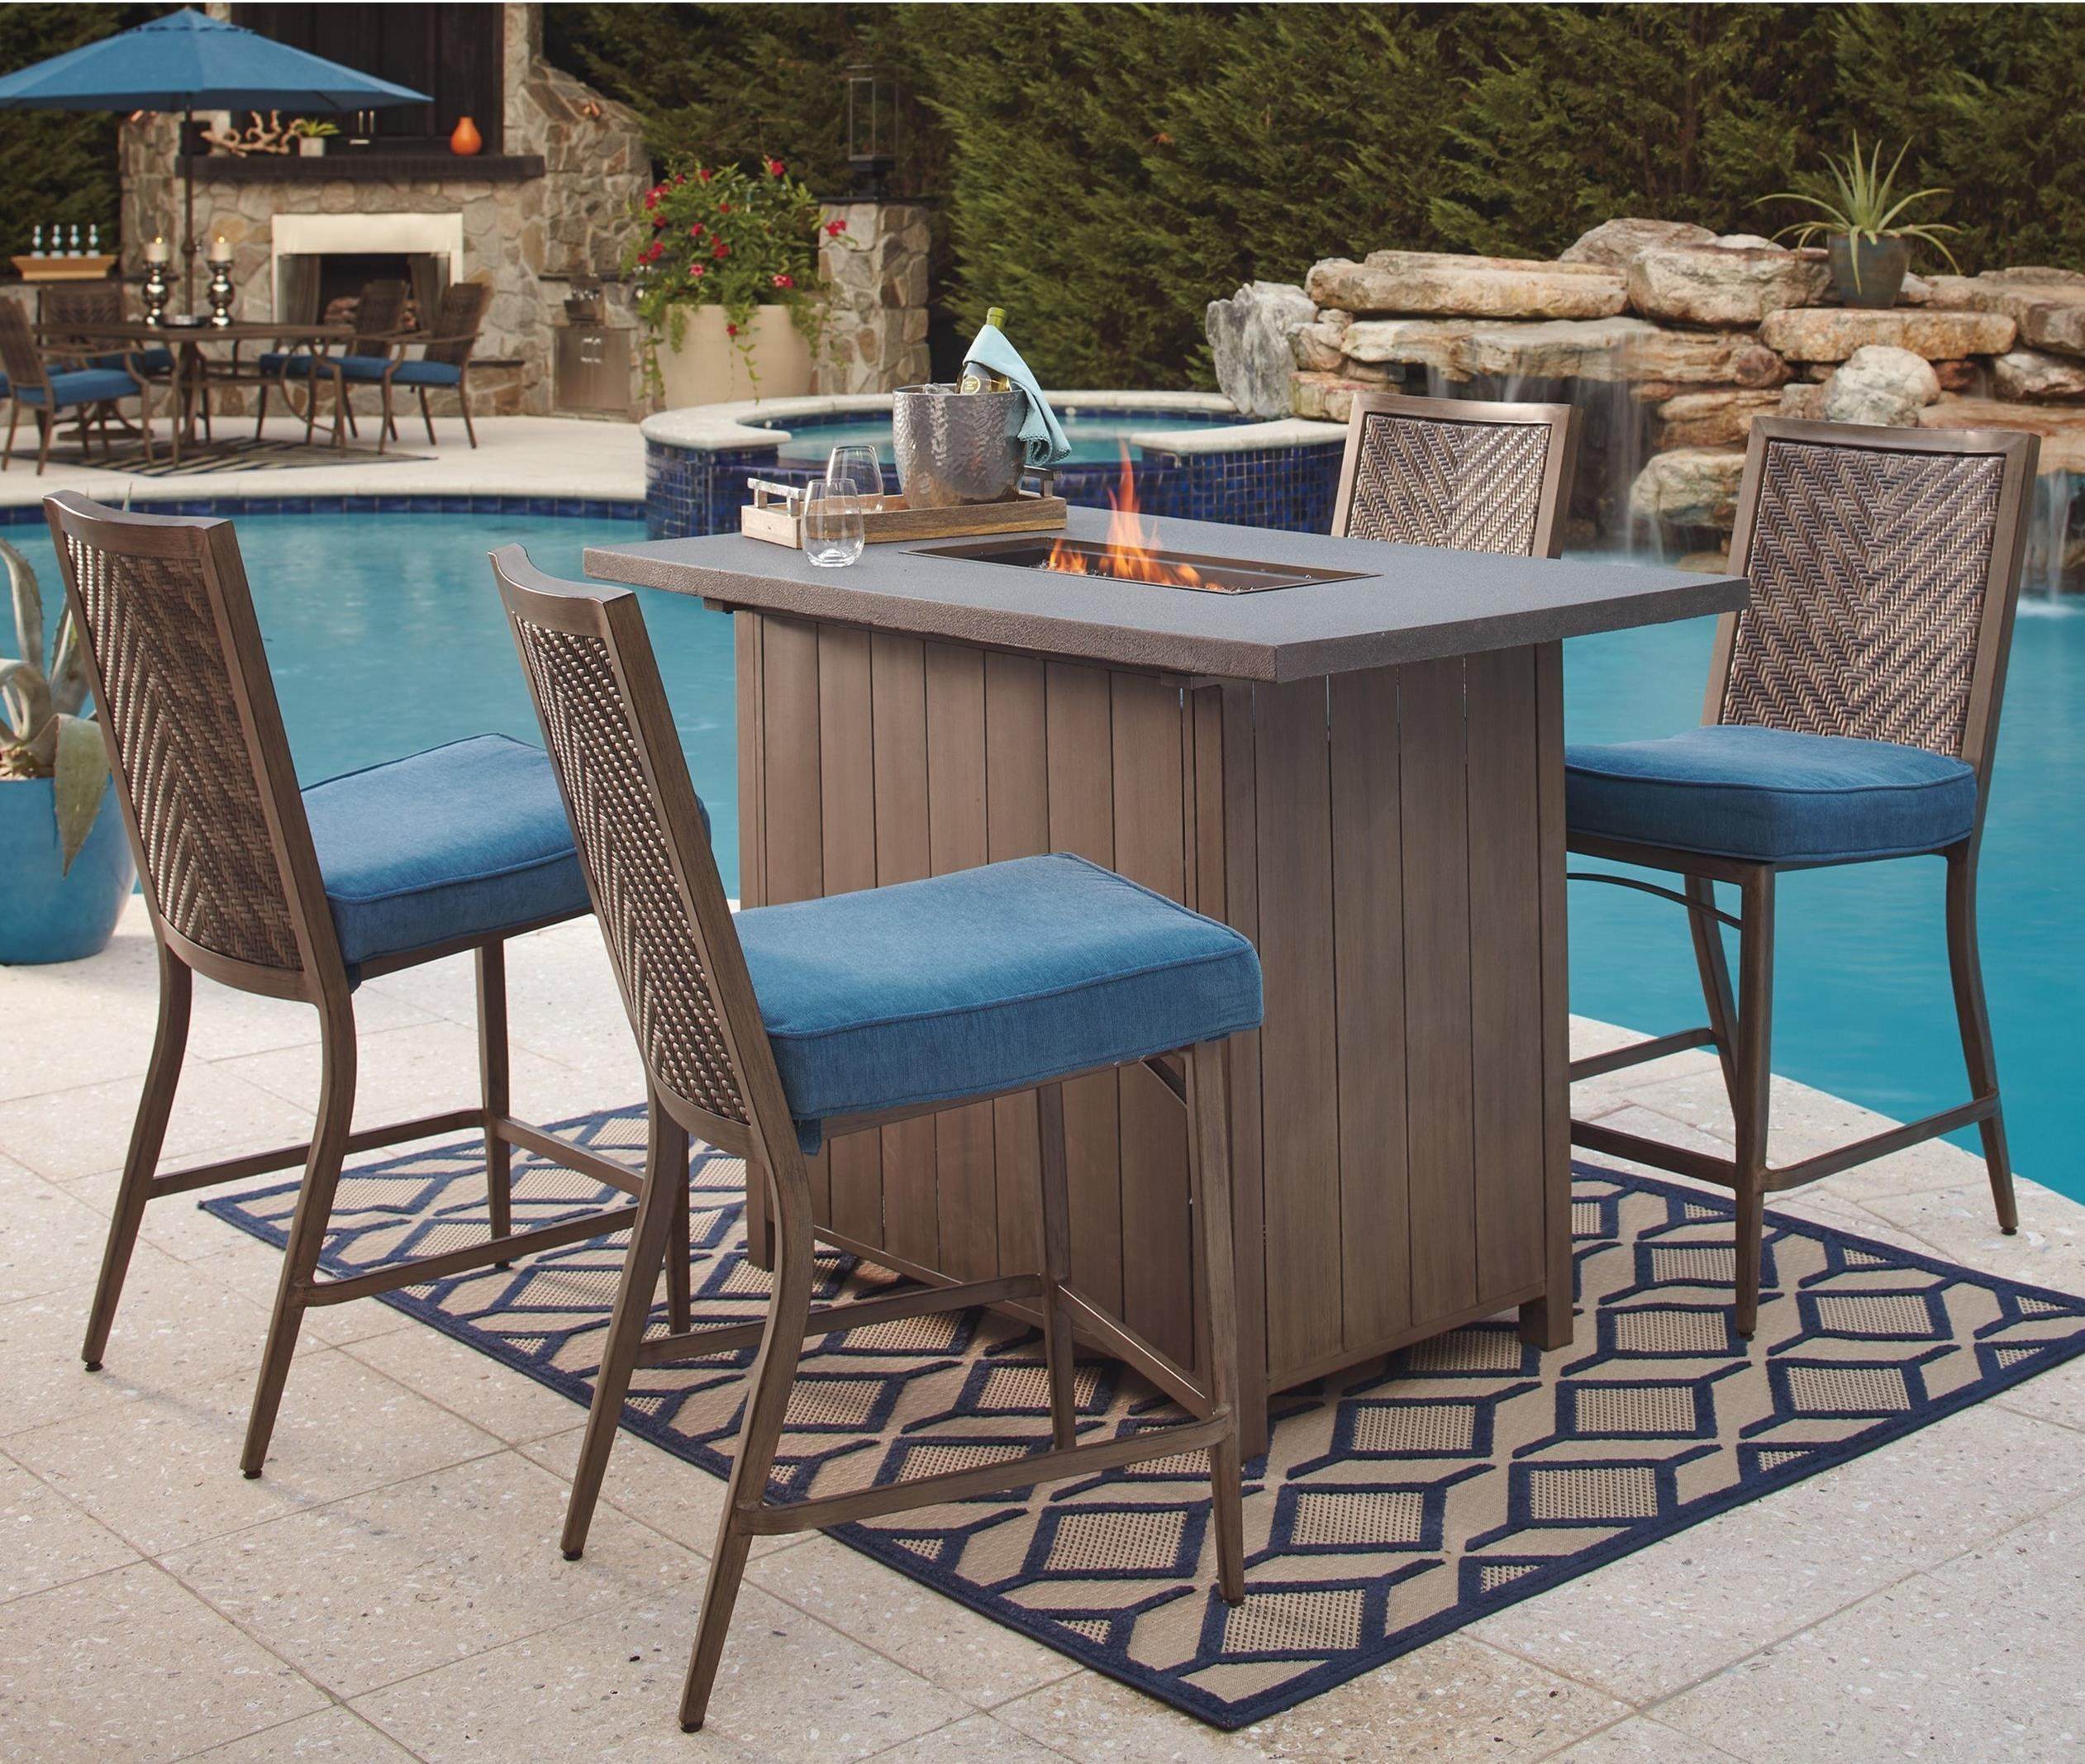 Delightful Signature Design By Ashley Partanna 5 Piece Bar Table With Fire Pit Set